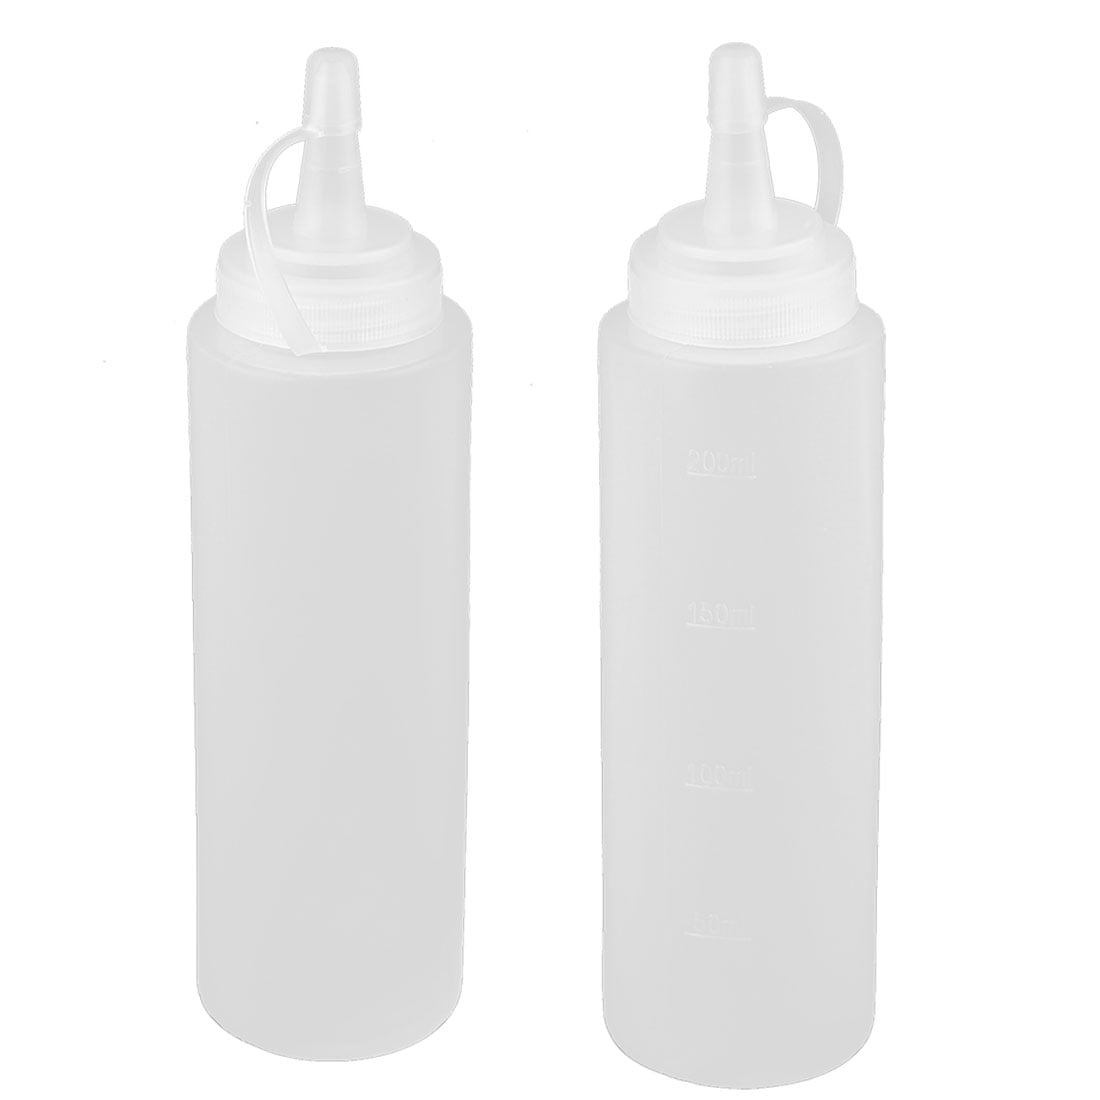 2PCS 500ML 17OZ White Empty Graduated Plastic Squeeze Wash Bottles with Curved Tip Nozzle Water Oil Condiment Sauce Holder Refillable Container Jars Sprinklers Can Pot Dispensers Gardening Tools